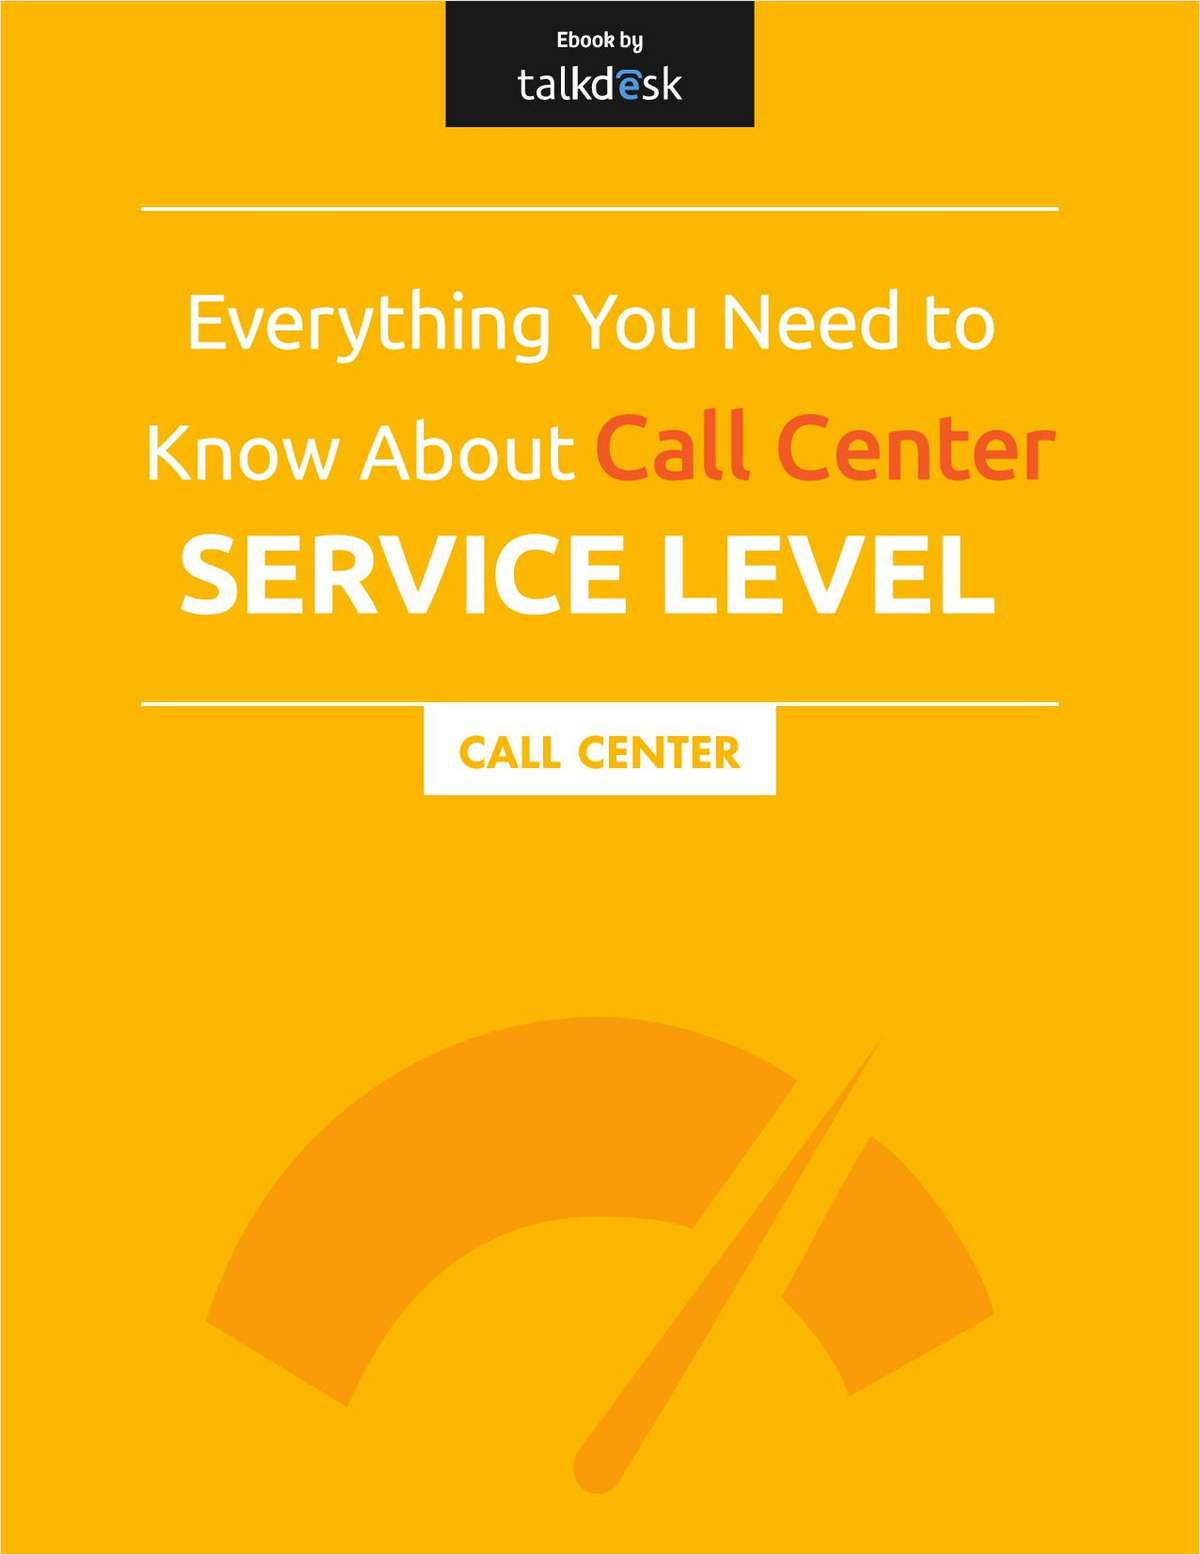 Everything You Need to Know about Call Center Service Level